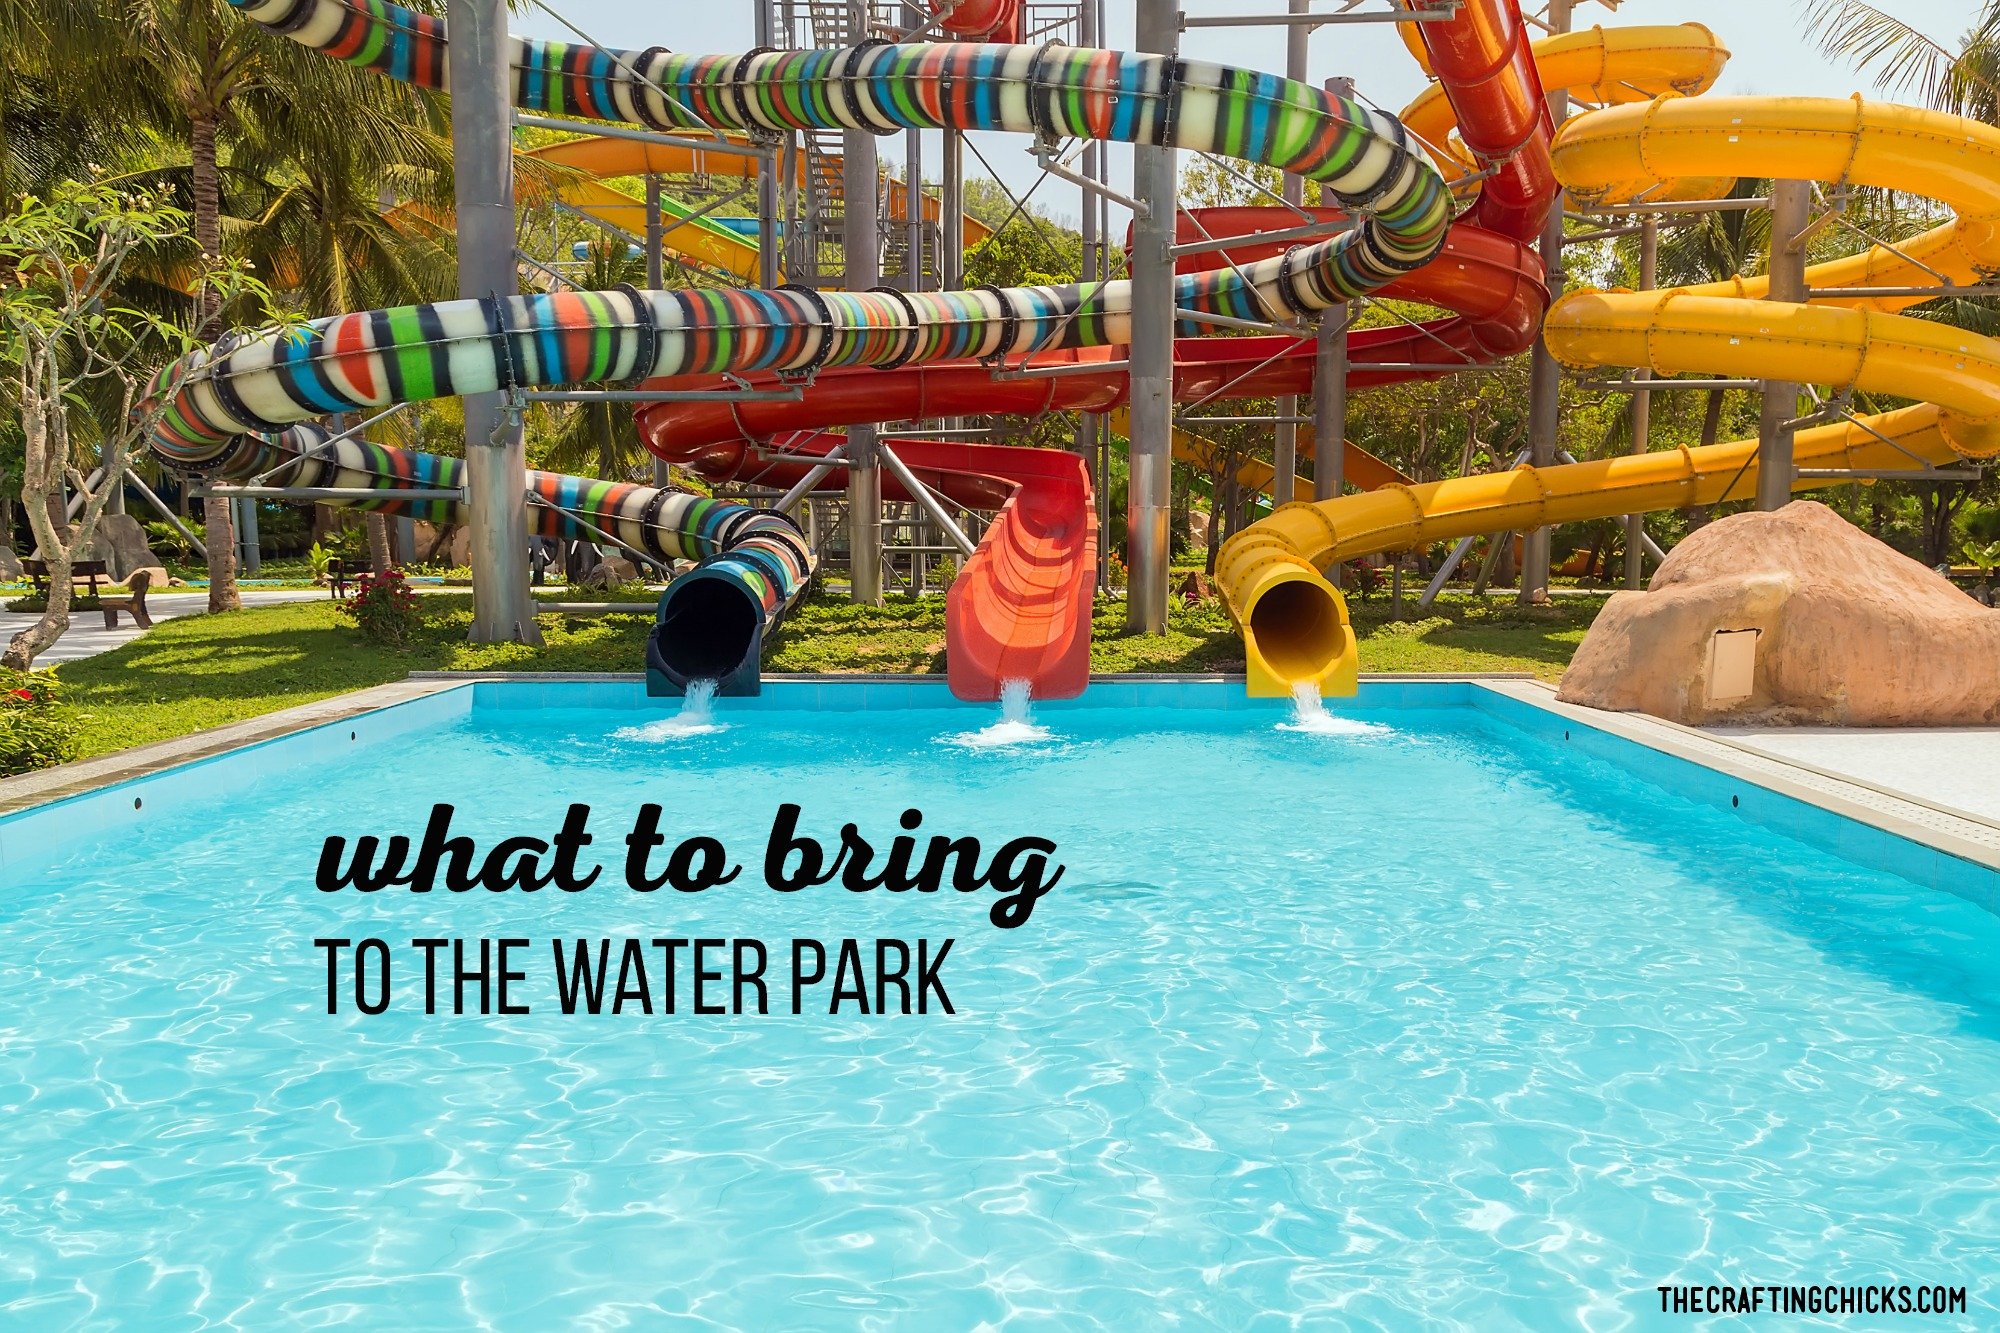 Make sure you have everything you'll need for a Water Park outing with our list of What to bring. #whattobringtothewaterpark #waterparkmusthaves #waterparkvacations